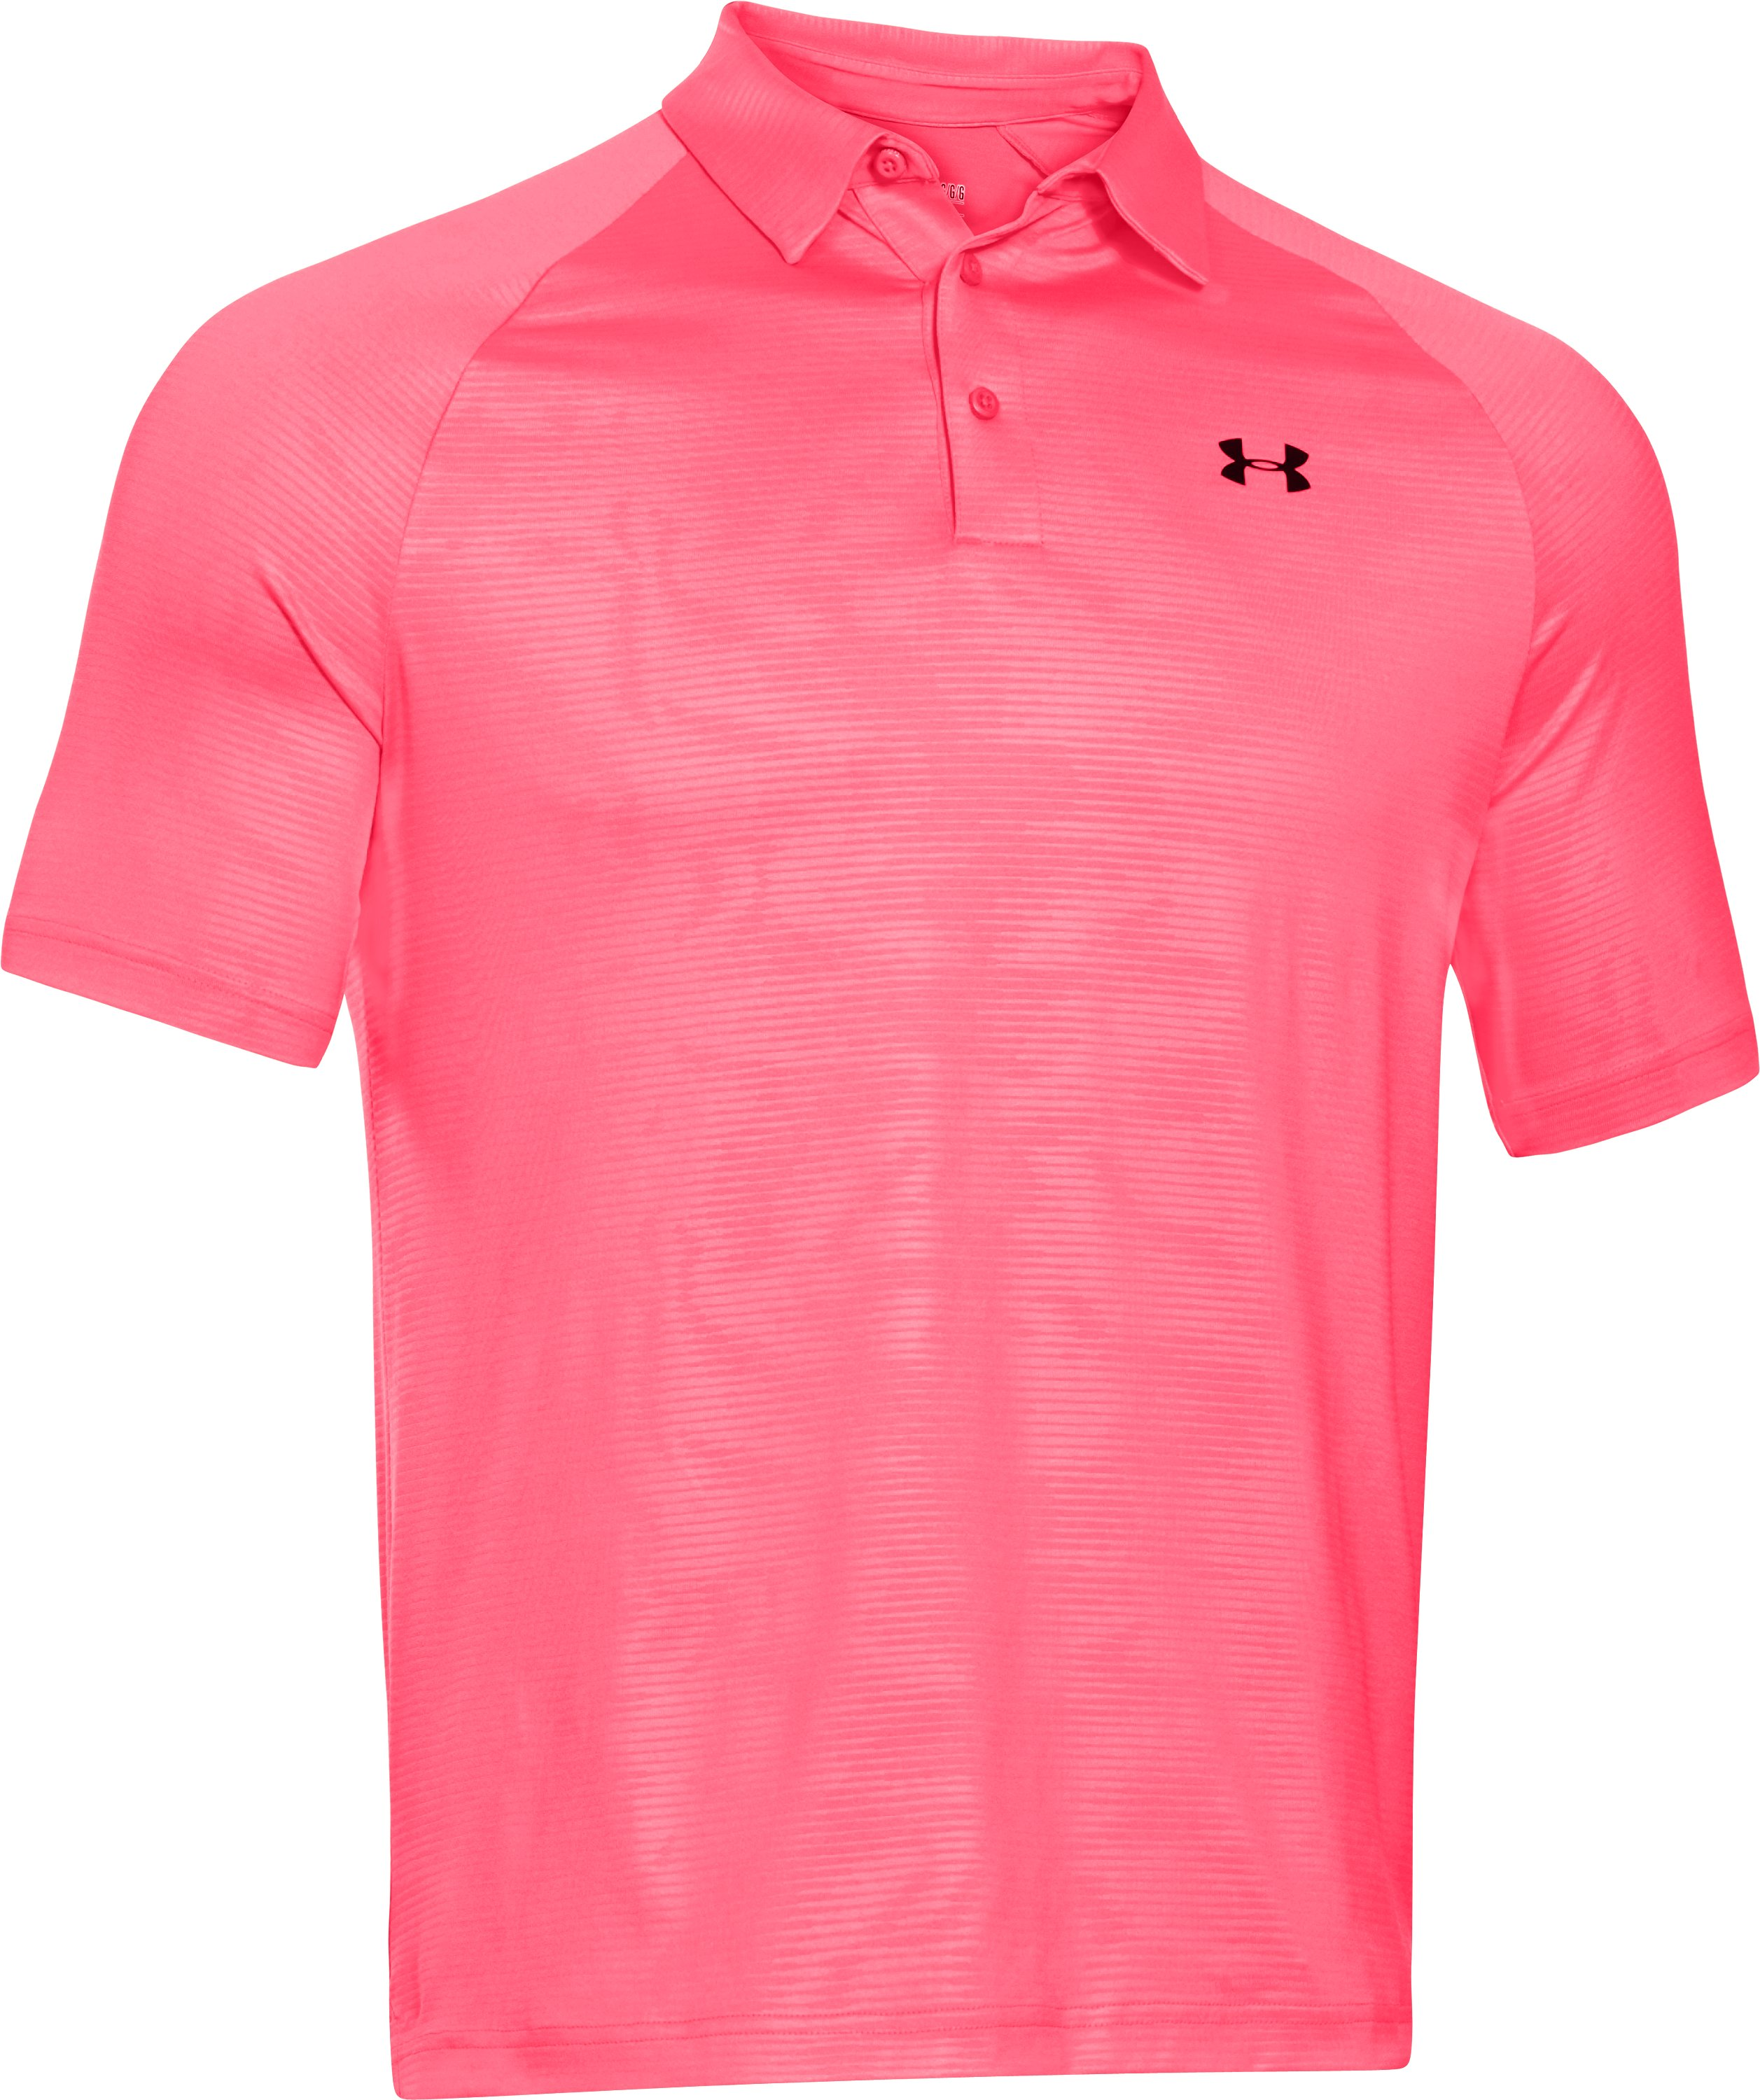 Men's coldblack® Player Polo, Neo Pulse